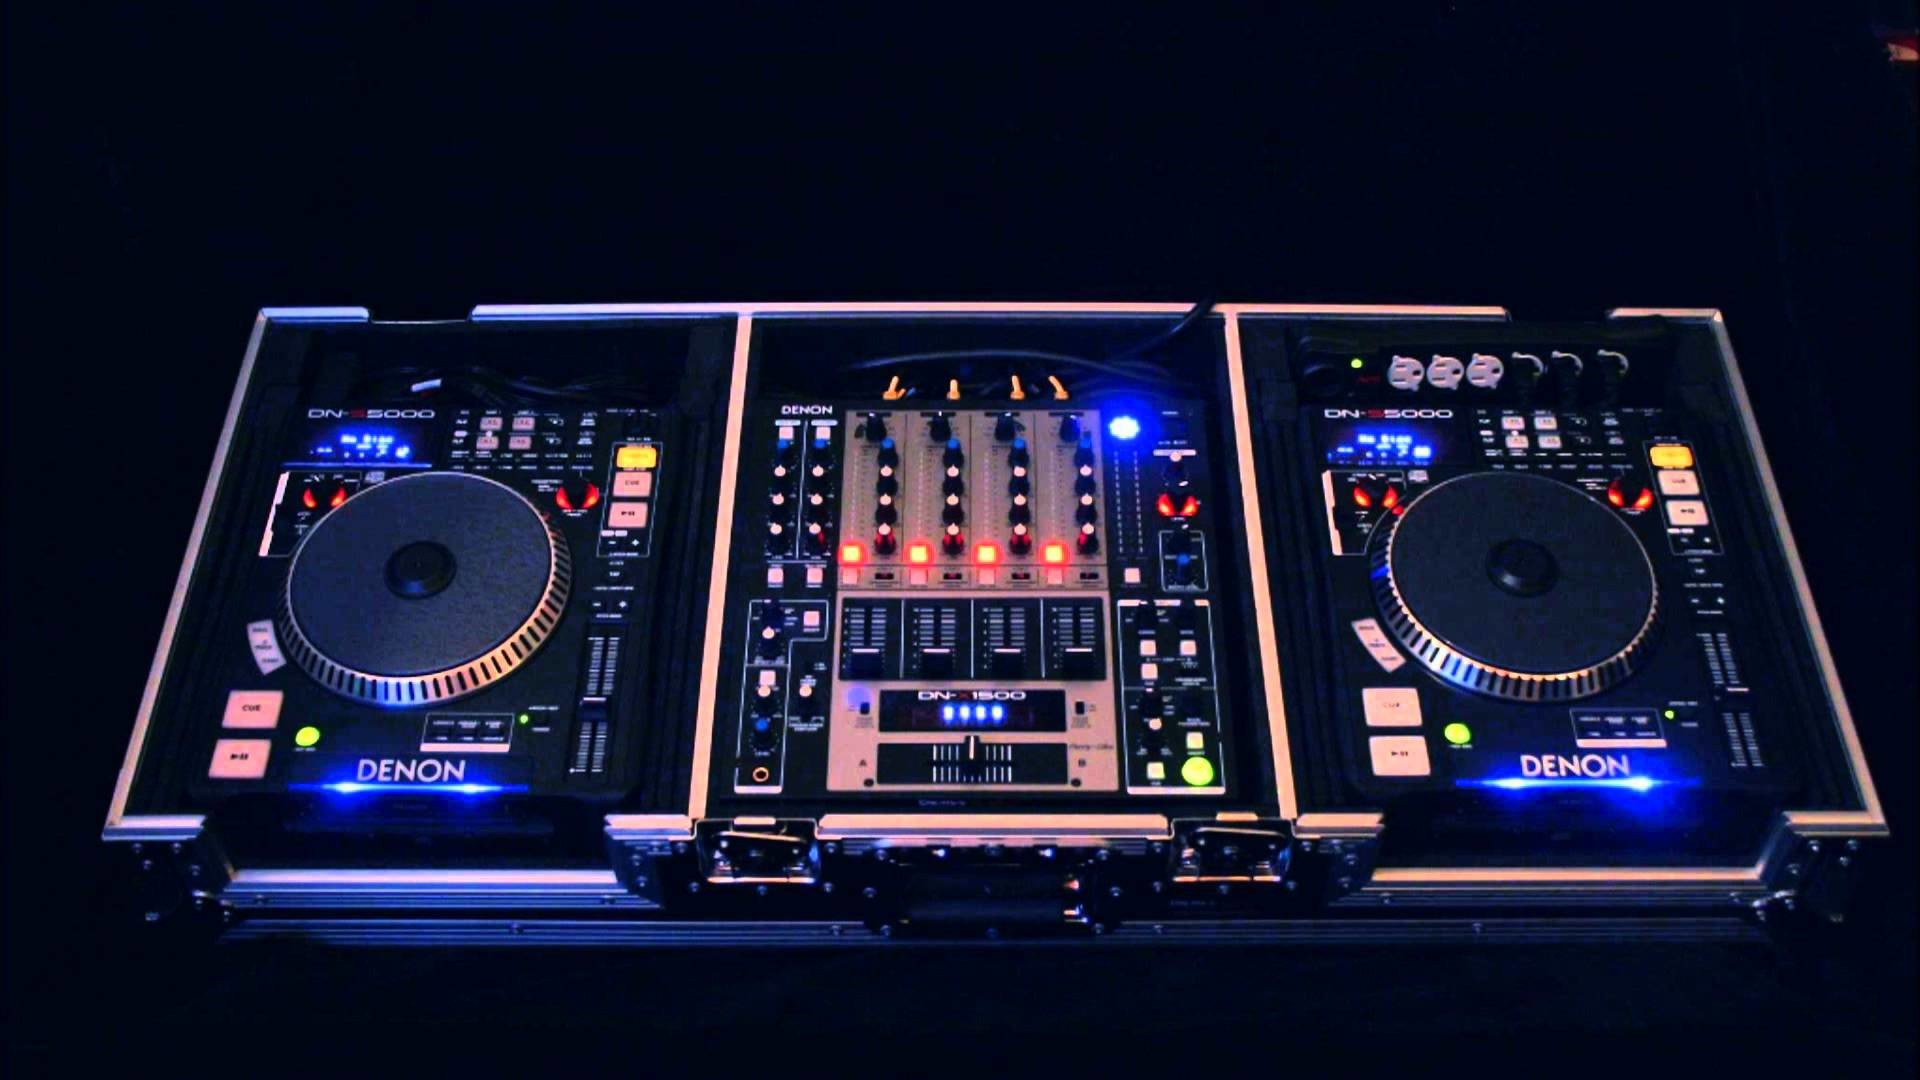 virtual dj wallpaper hd widescreen ·①